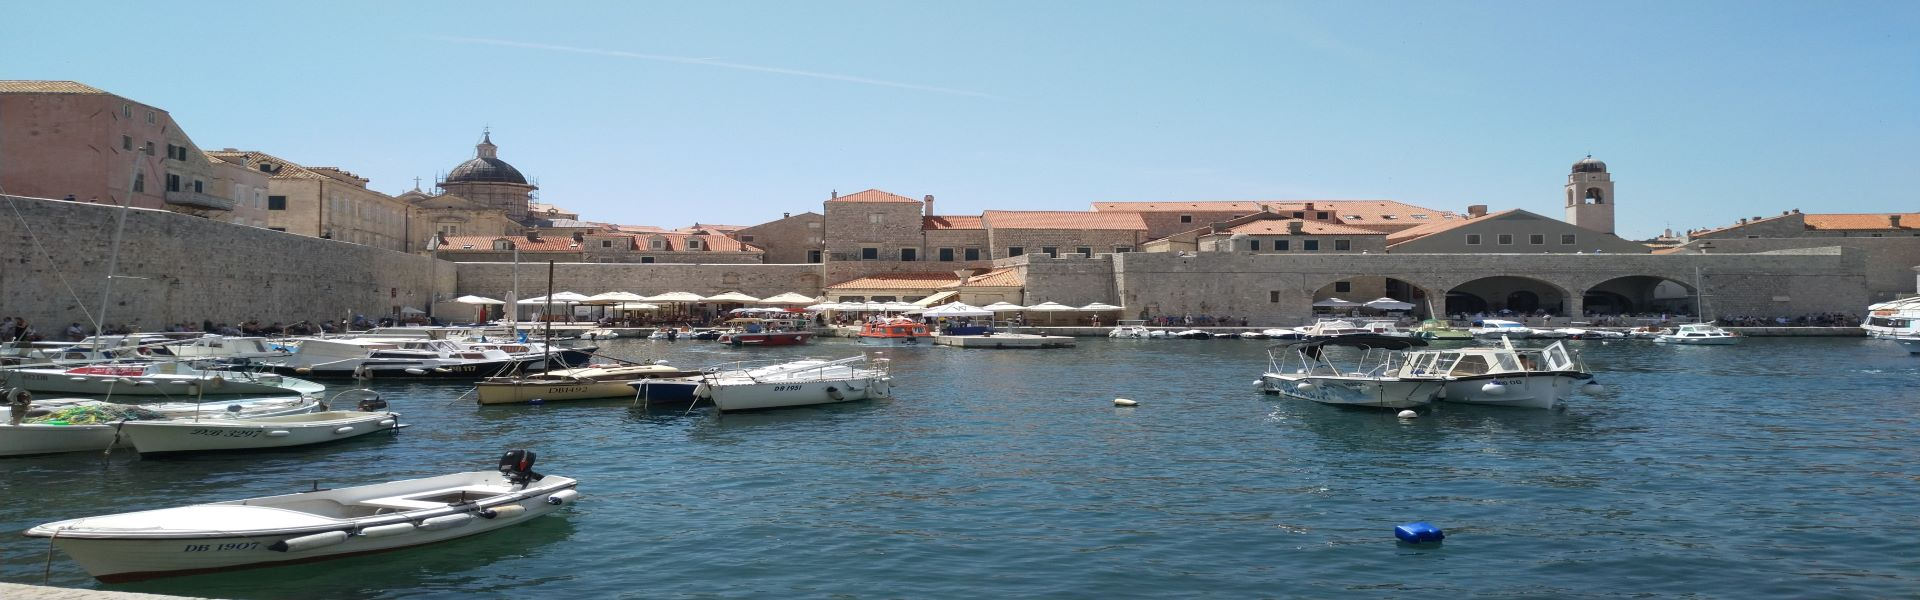 Top Attractions in Dubrovnik